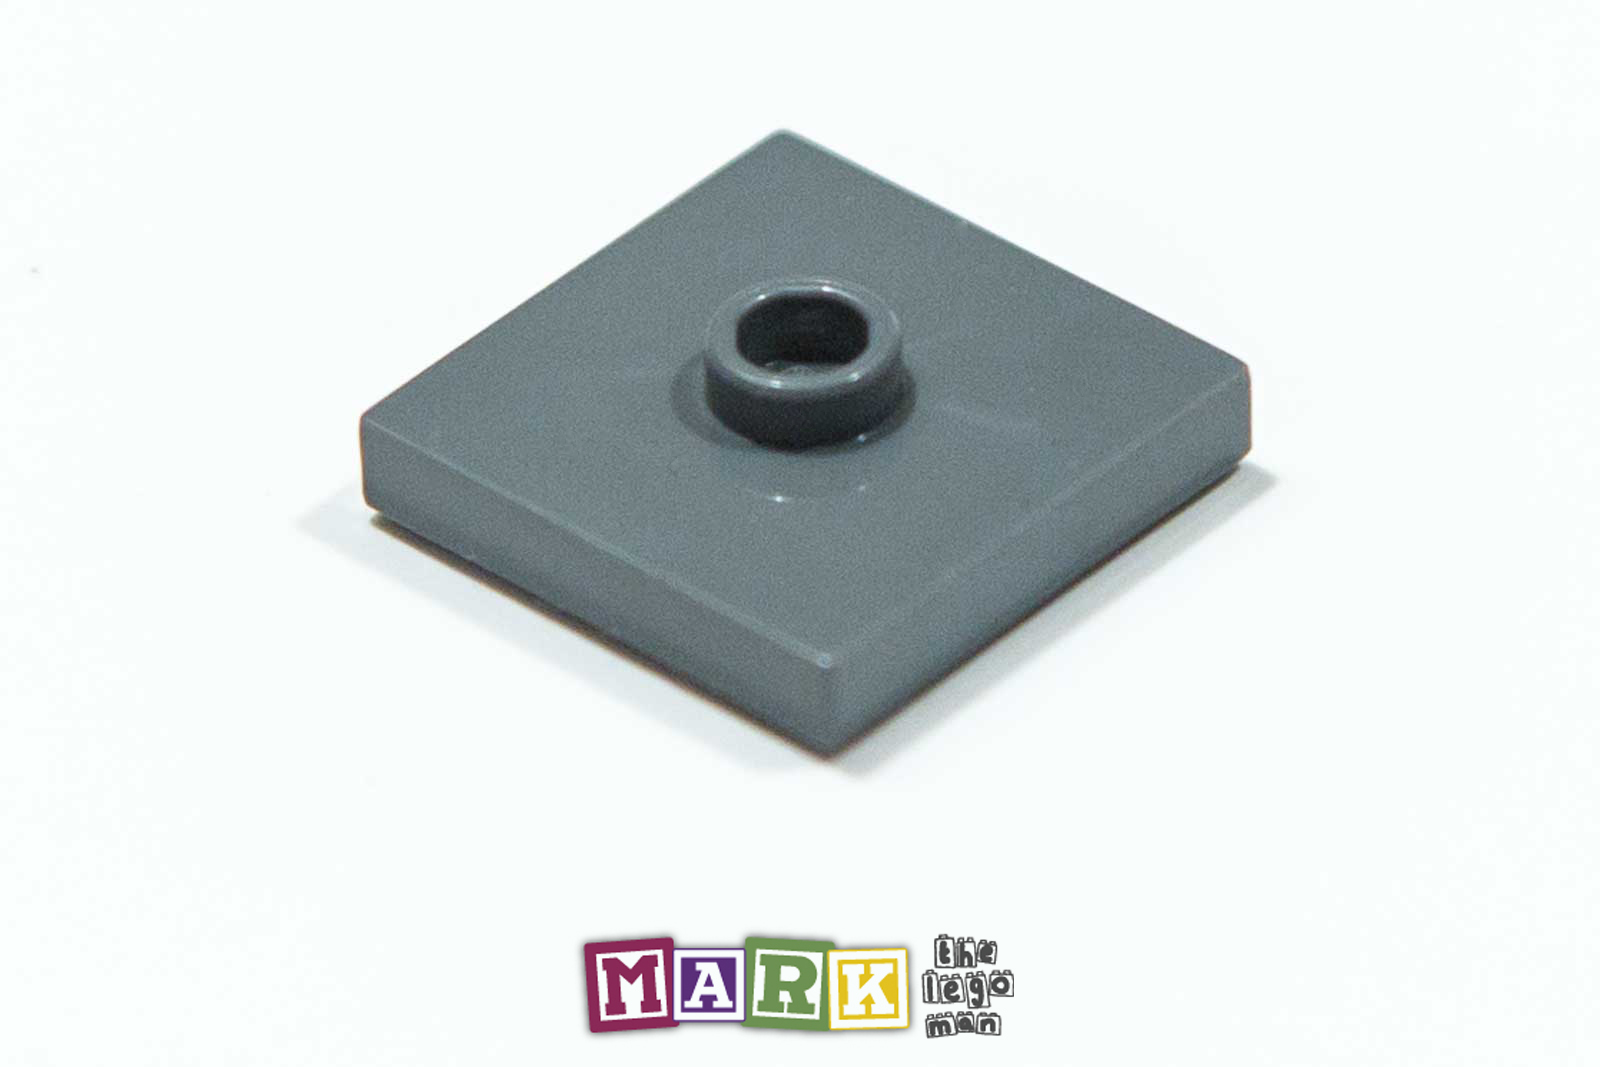 New Lego 87580 2x2 Plate with 1 knob stud 4565322